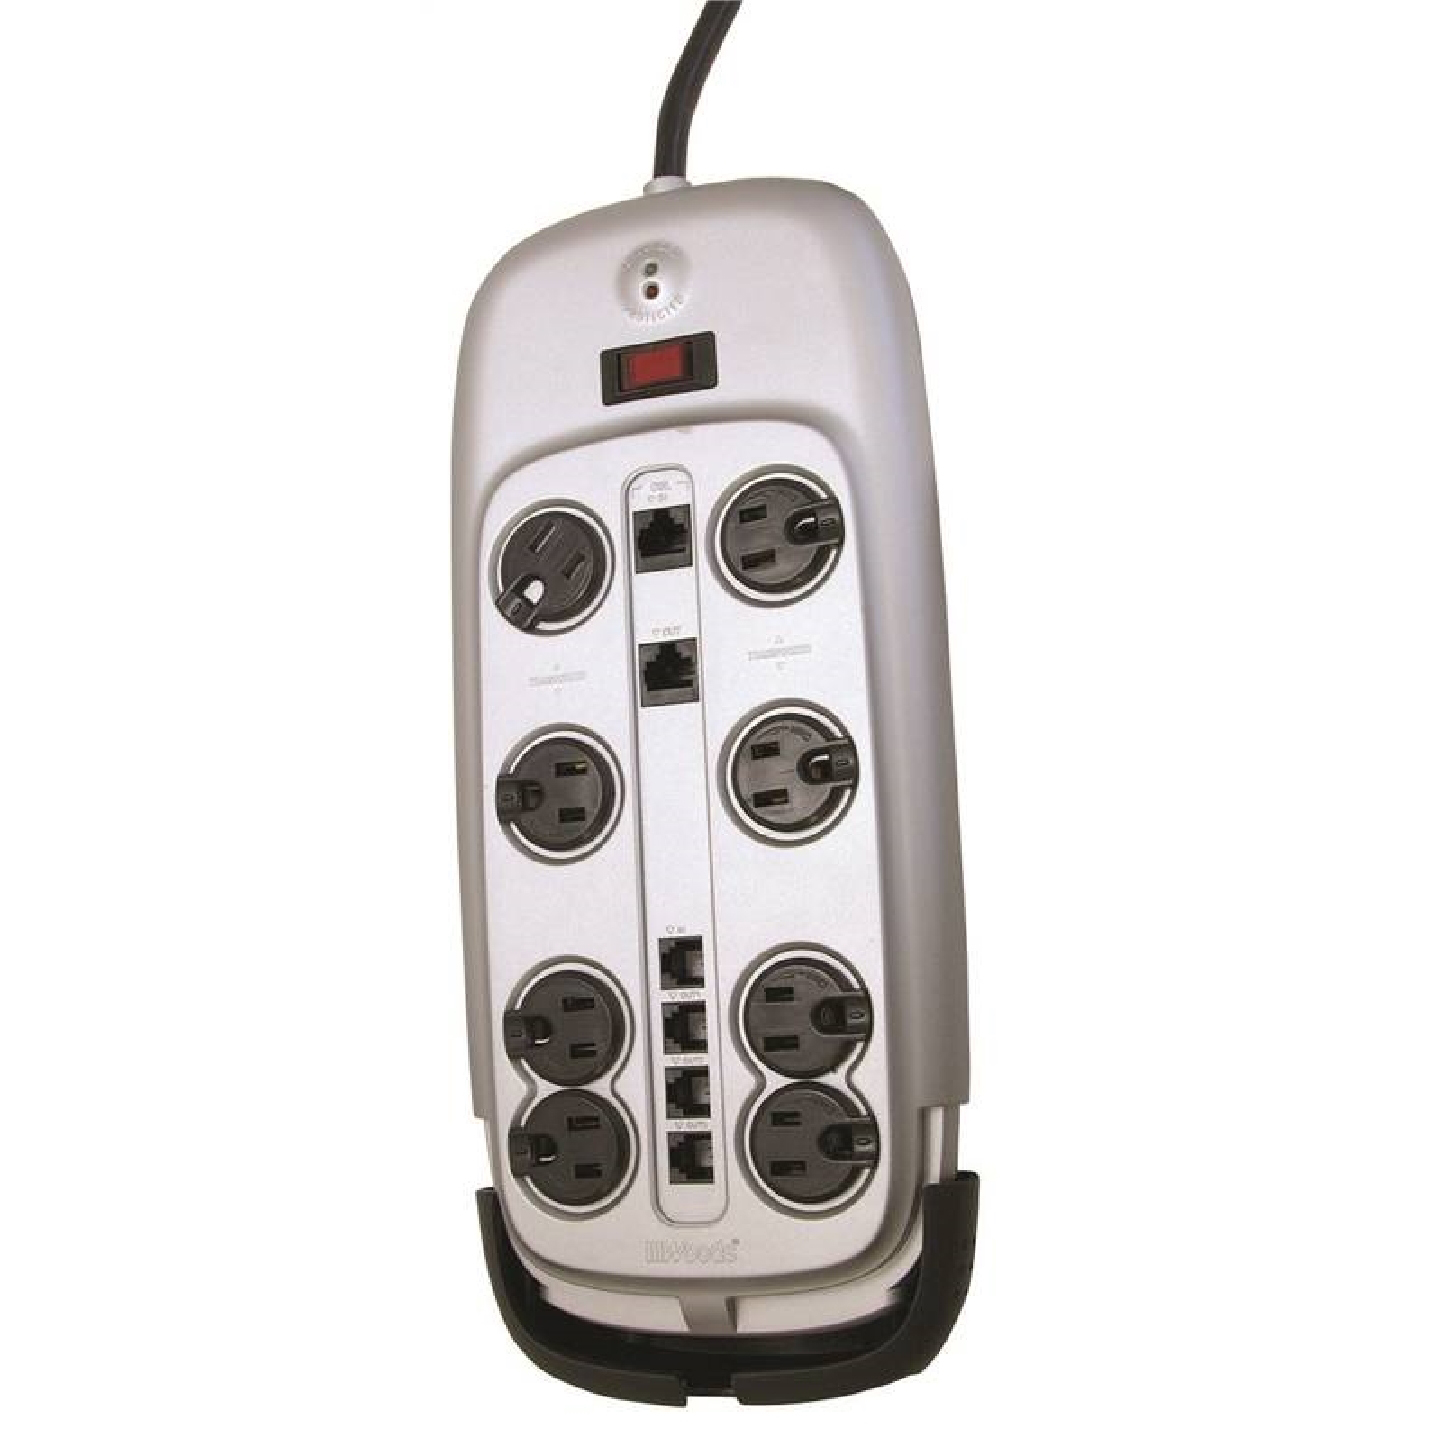 Picture of Woods 546521 Surge Protector, 8-Outlet, 3345 J Energy